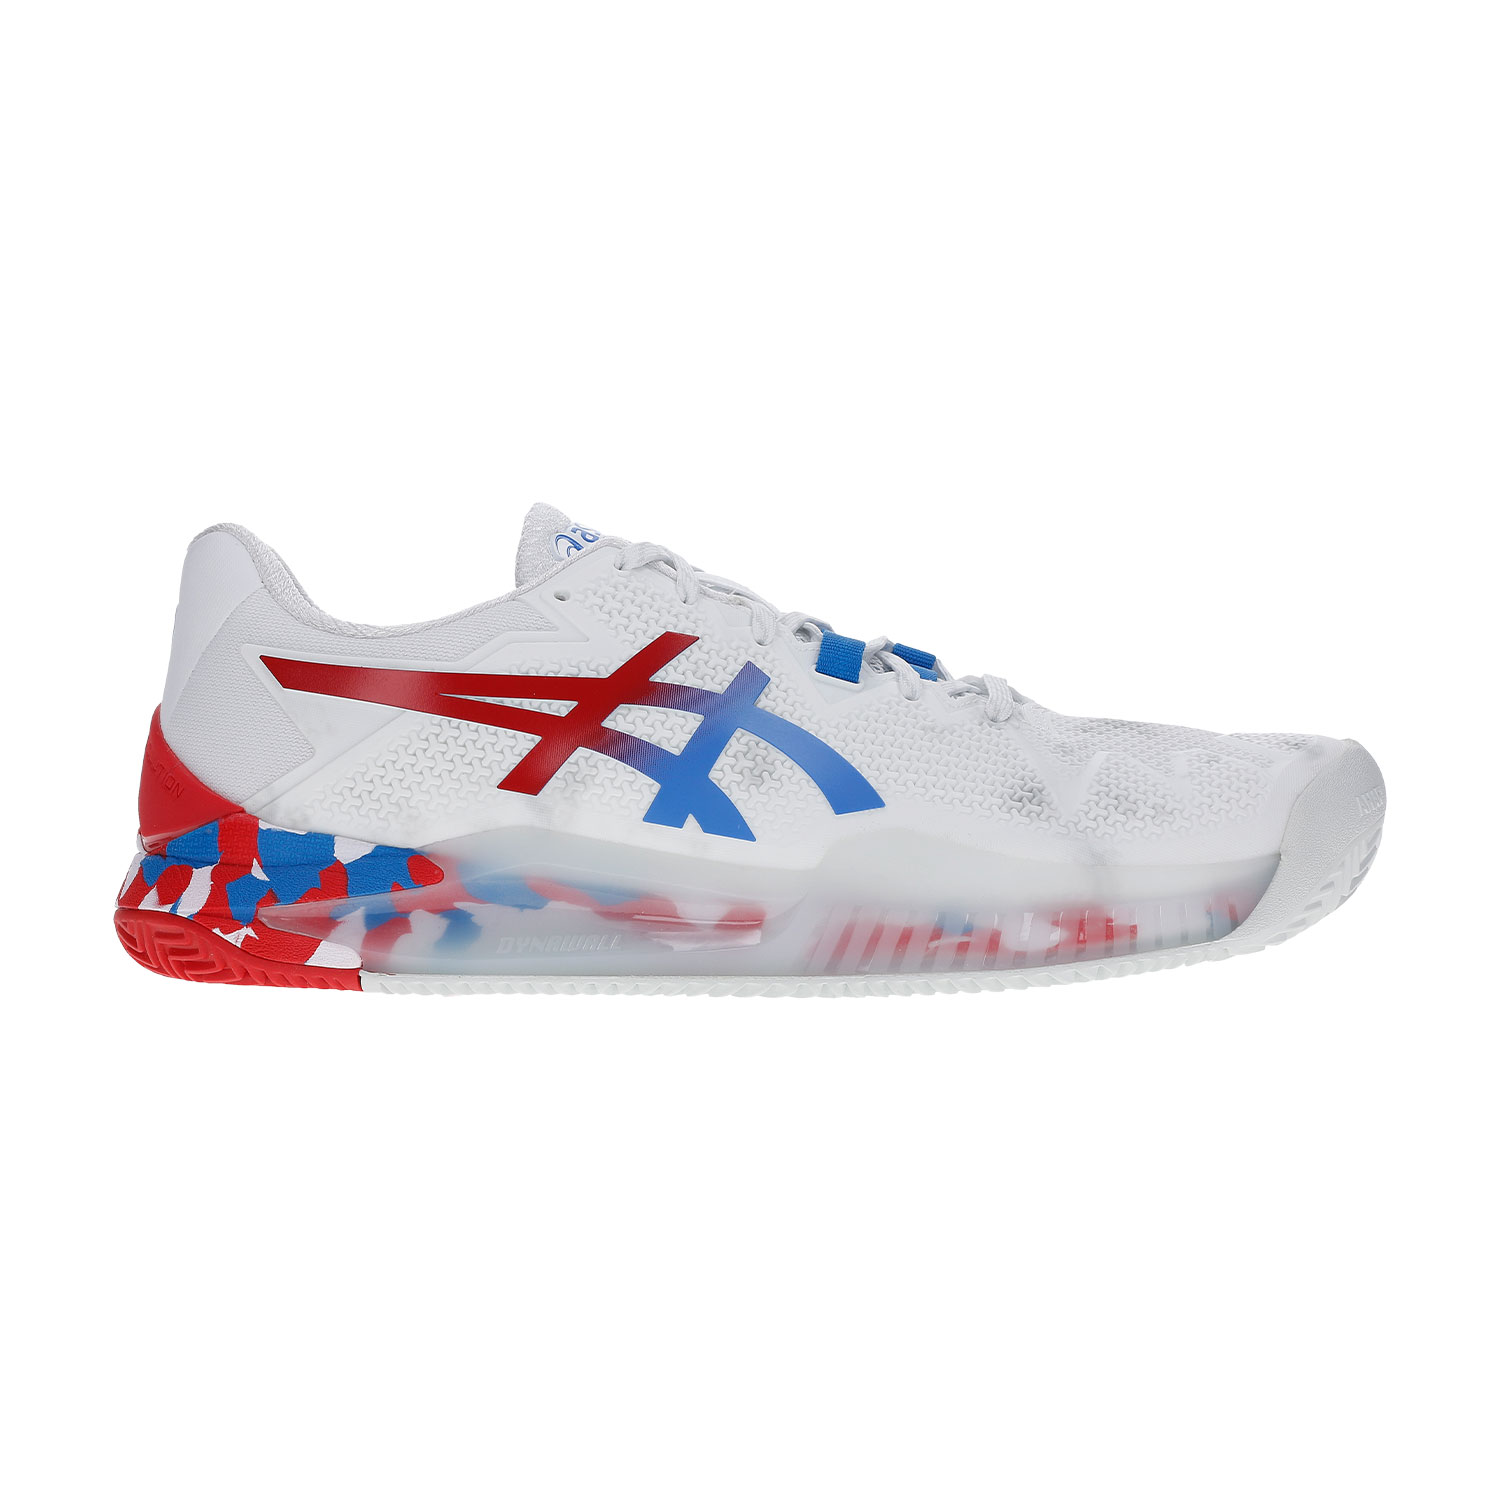 ASICS GEL RESOLUTION 8 CLAY L.E. WHITEELECTRIC BLUE